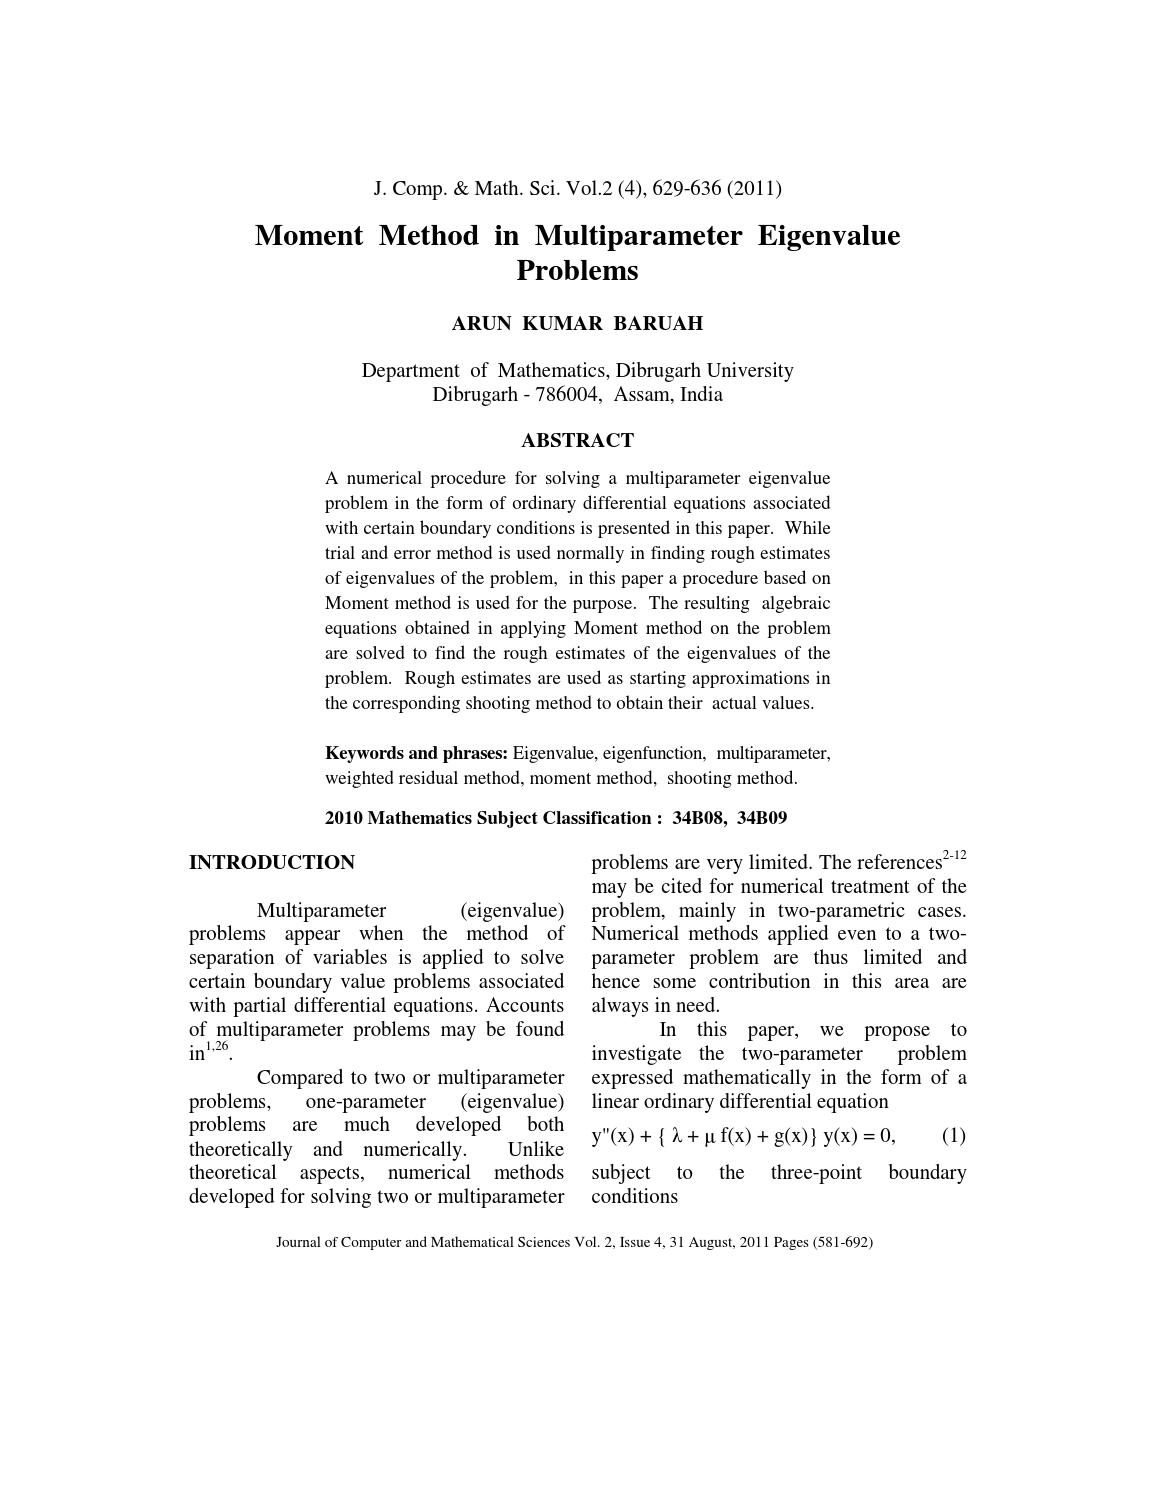 Cmjv02i04p0629 by Journal of Computer and Mathematical